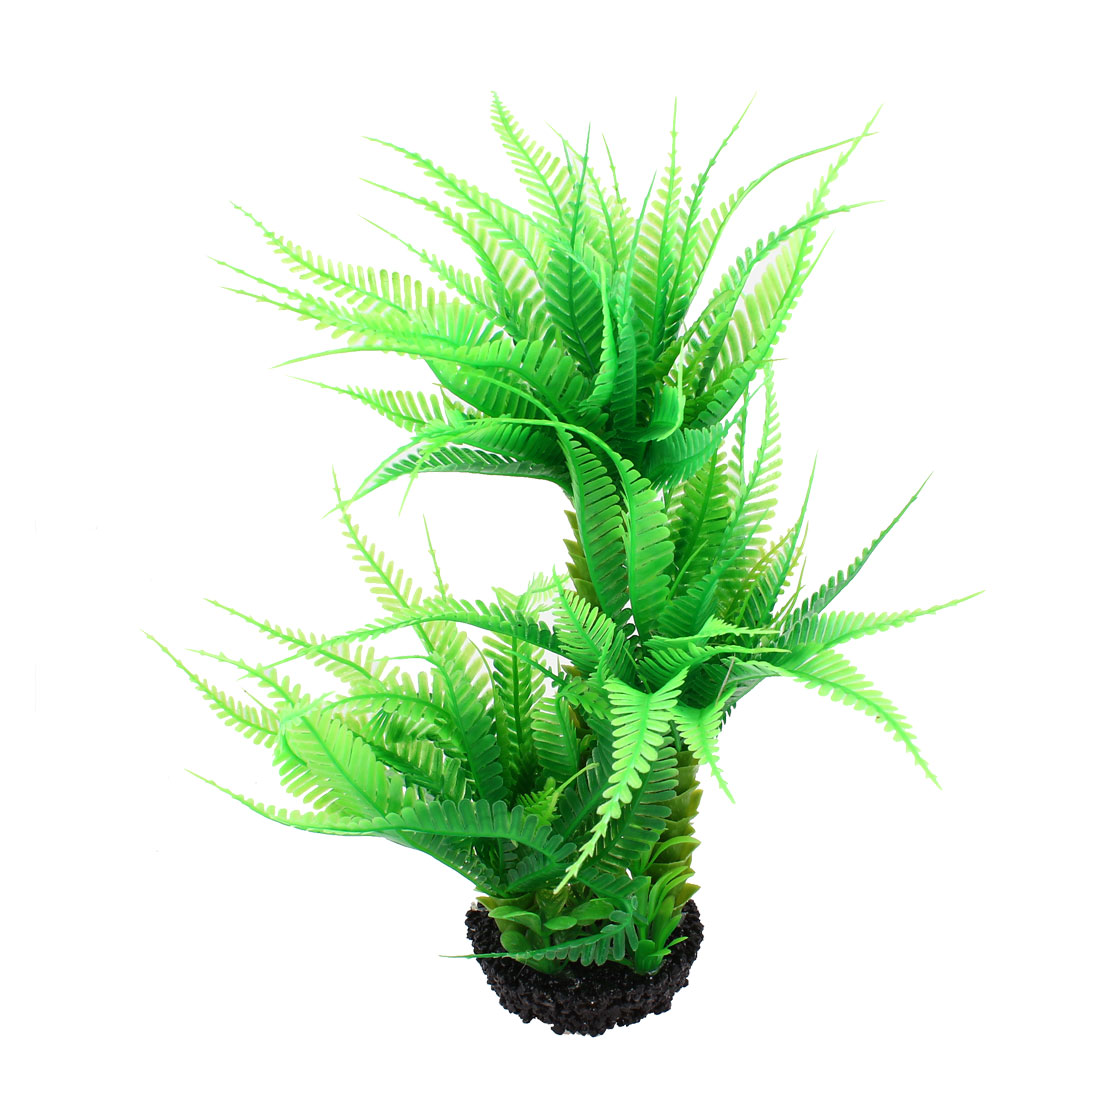 31cm Height Manmade Coconut Palm Artificial Green Plant for Fish Tank Aquarium